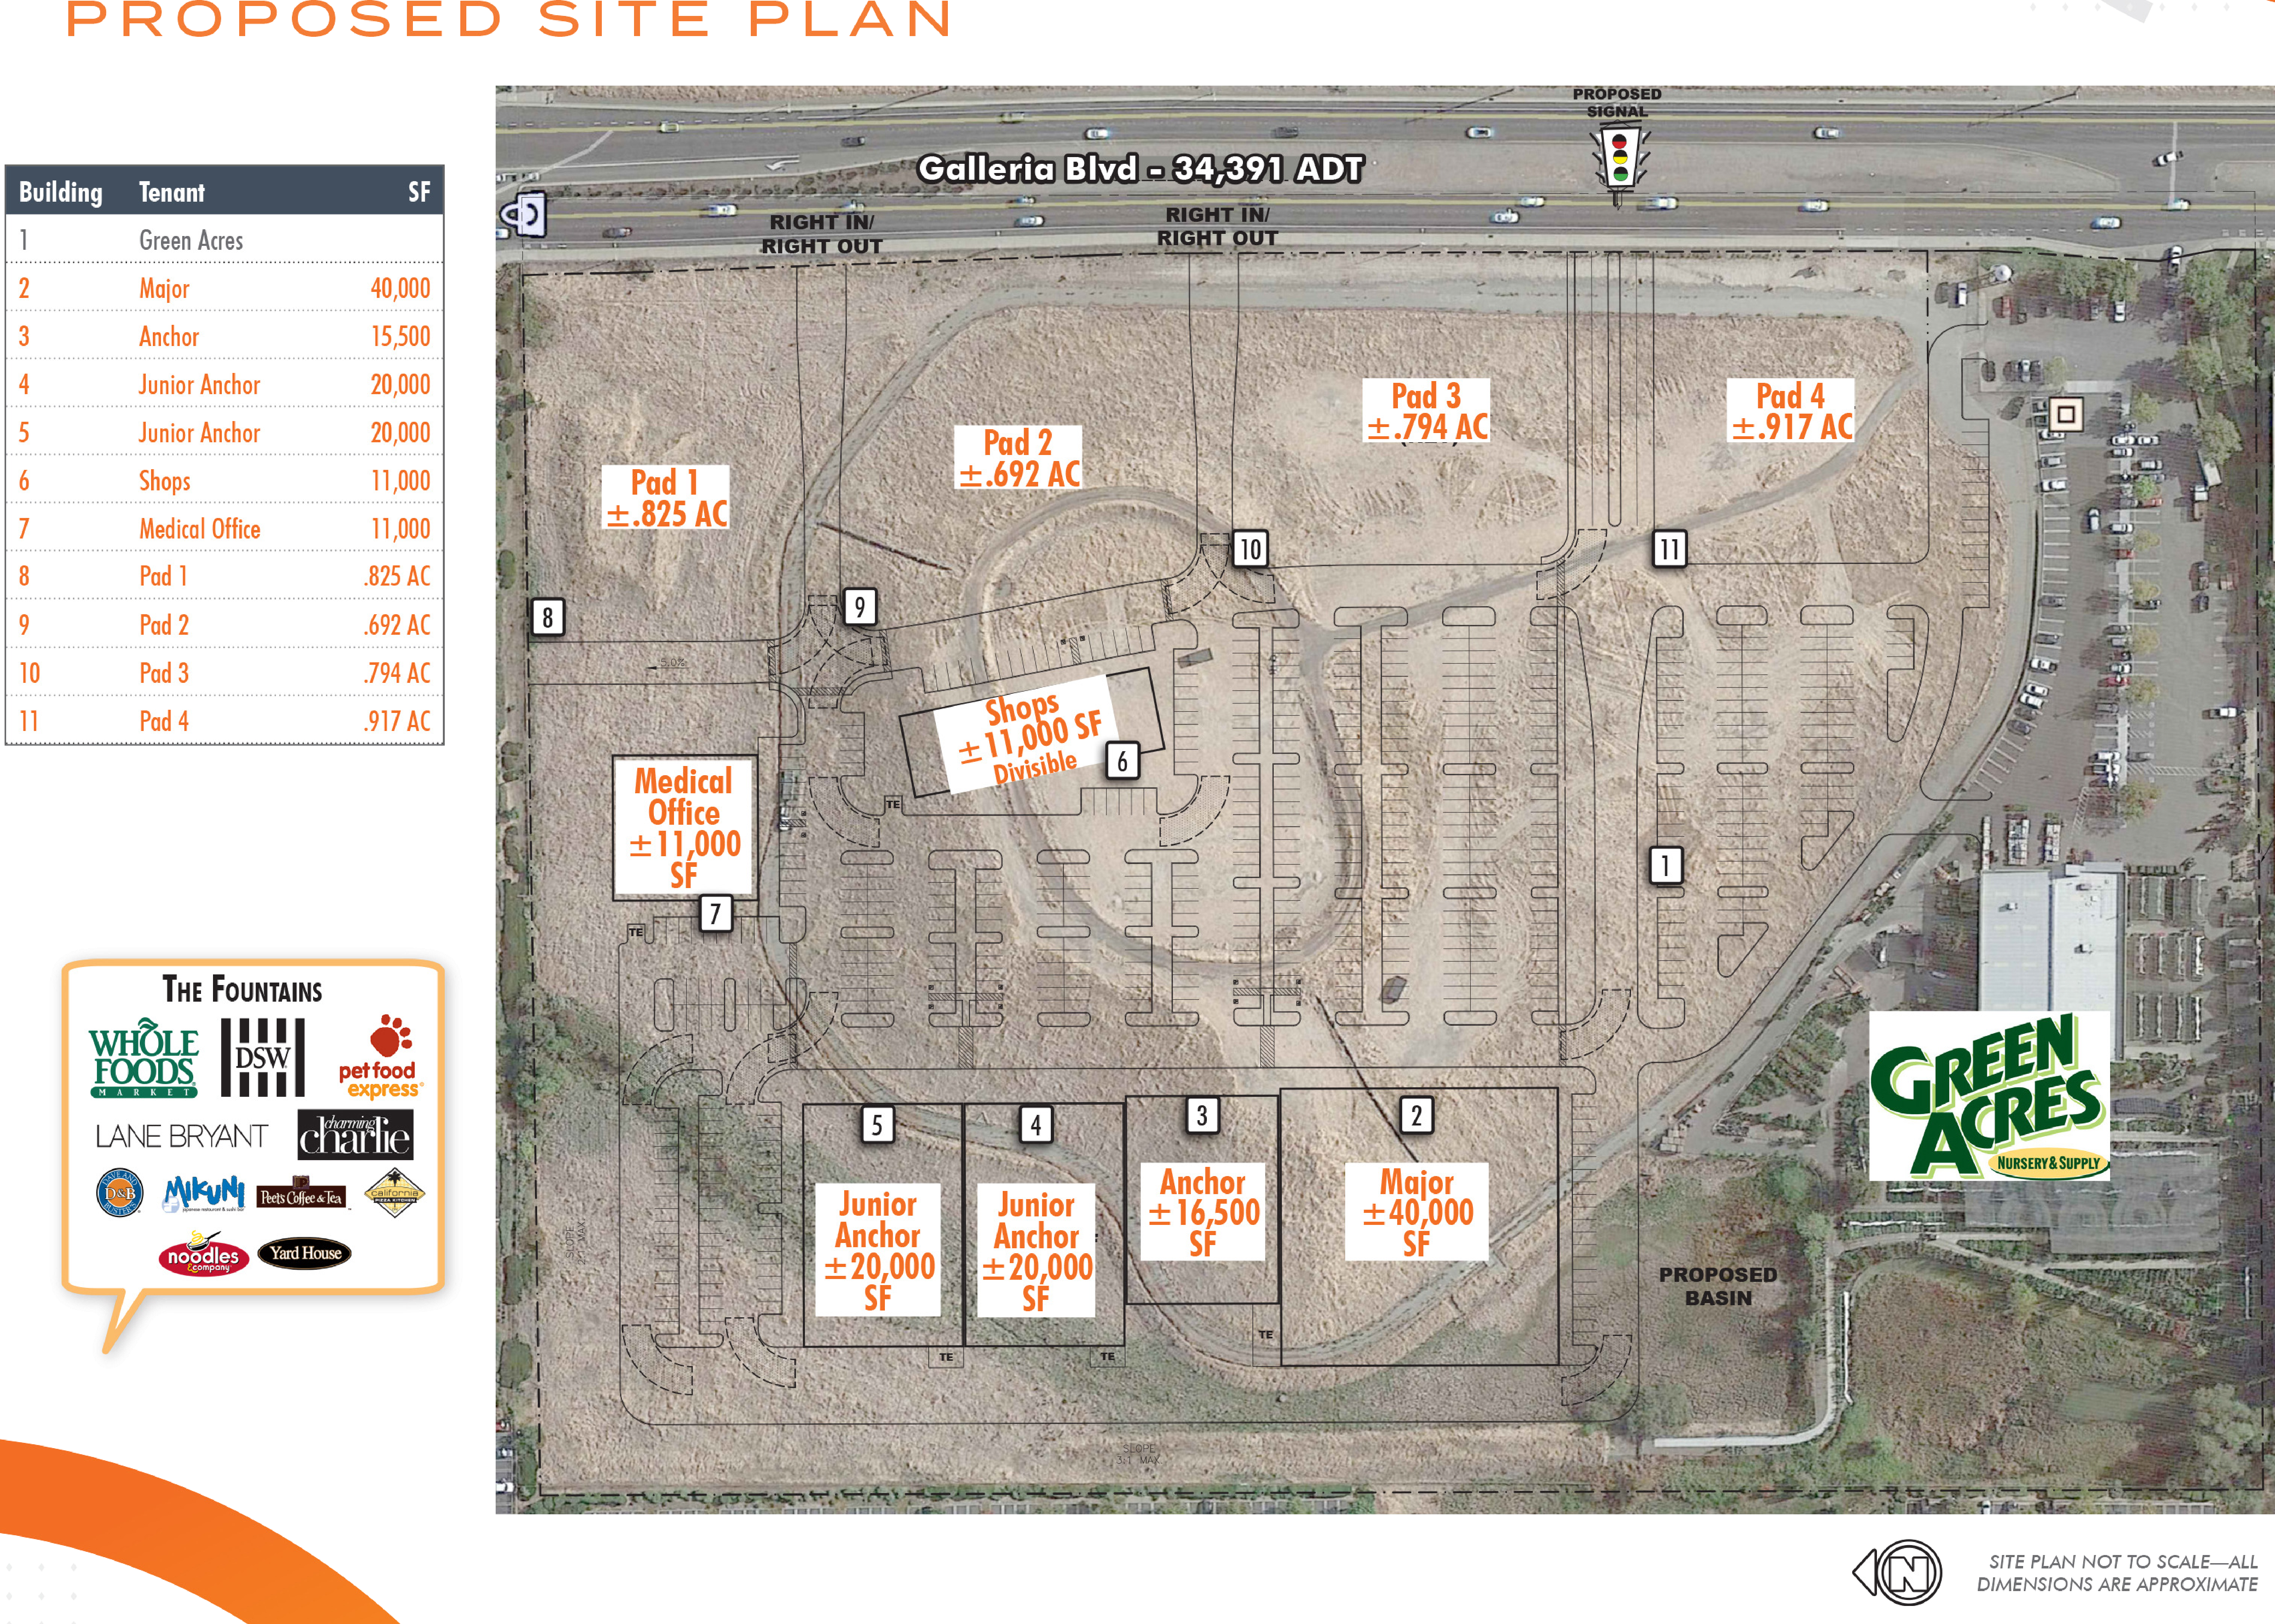 901-903 Galleria Blvd: site plan